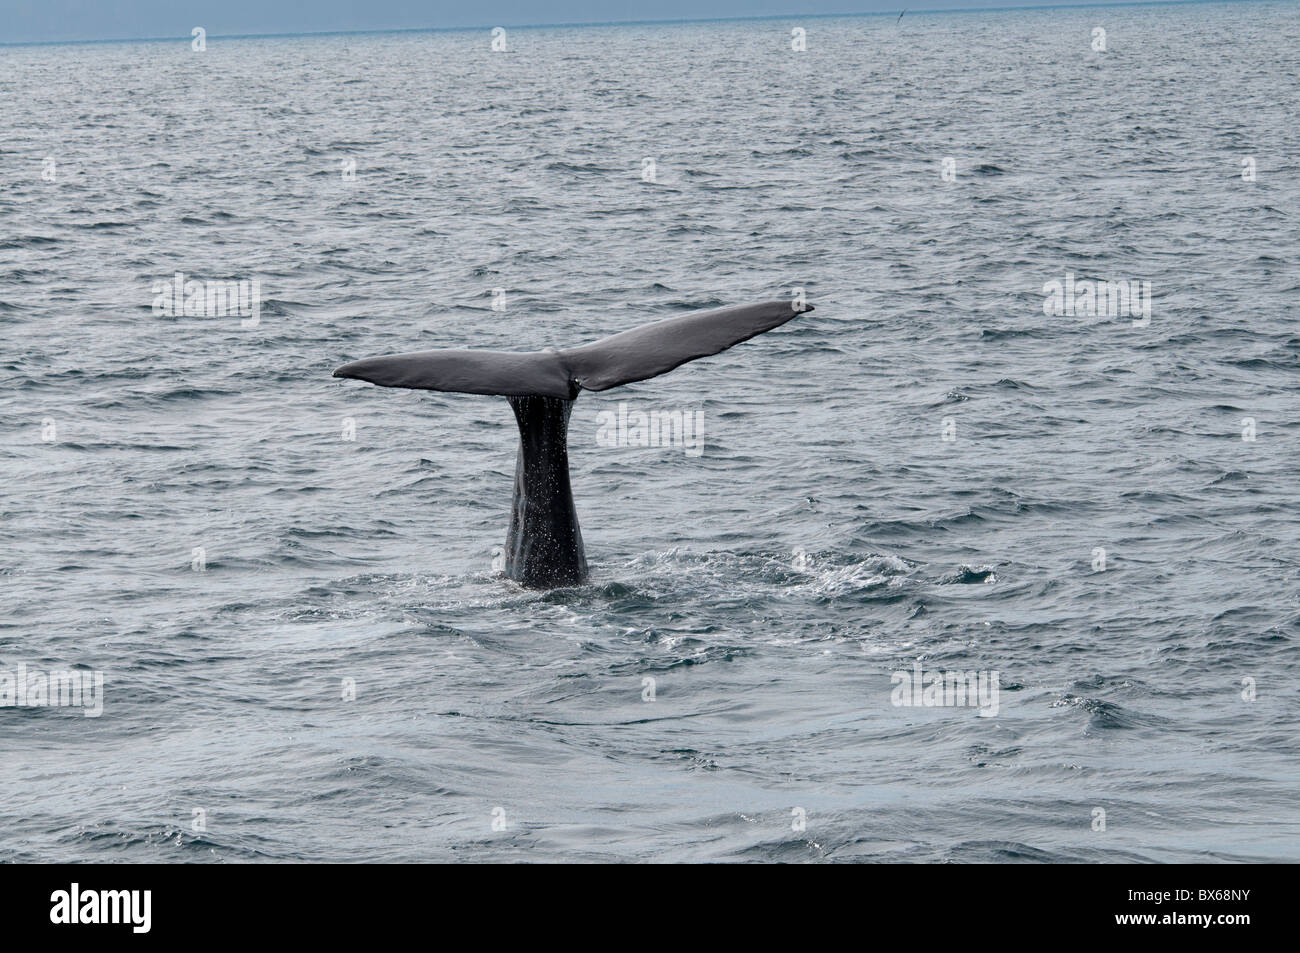 Abtauchender Pottwal, Sperm Whale diving - Stock Image